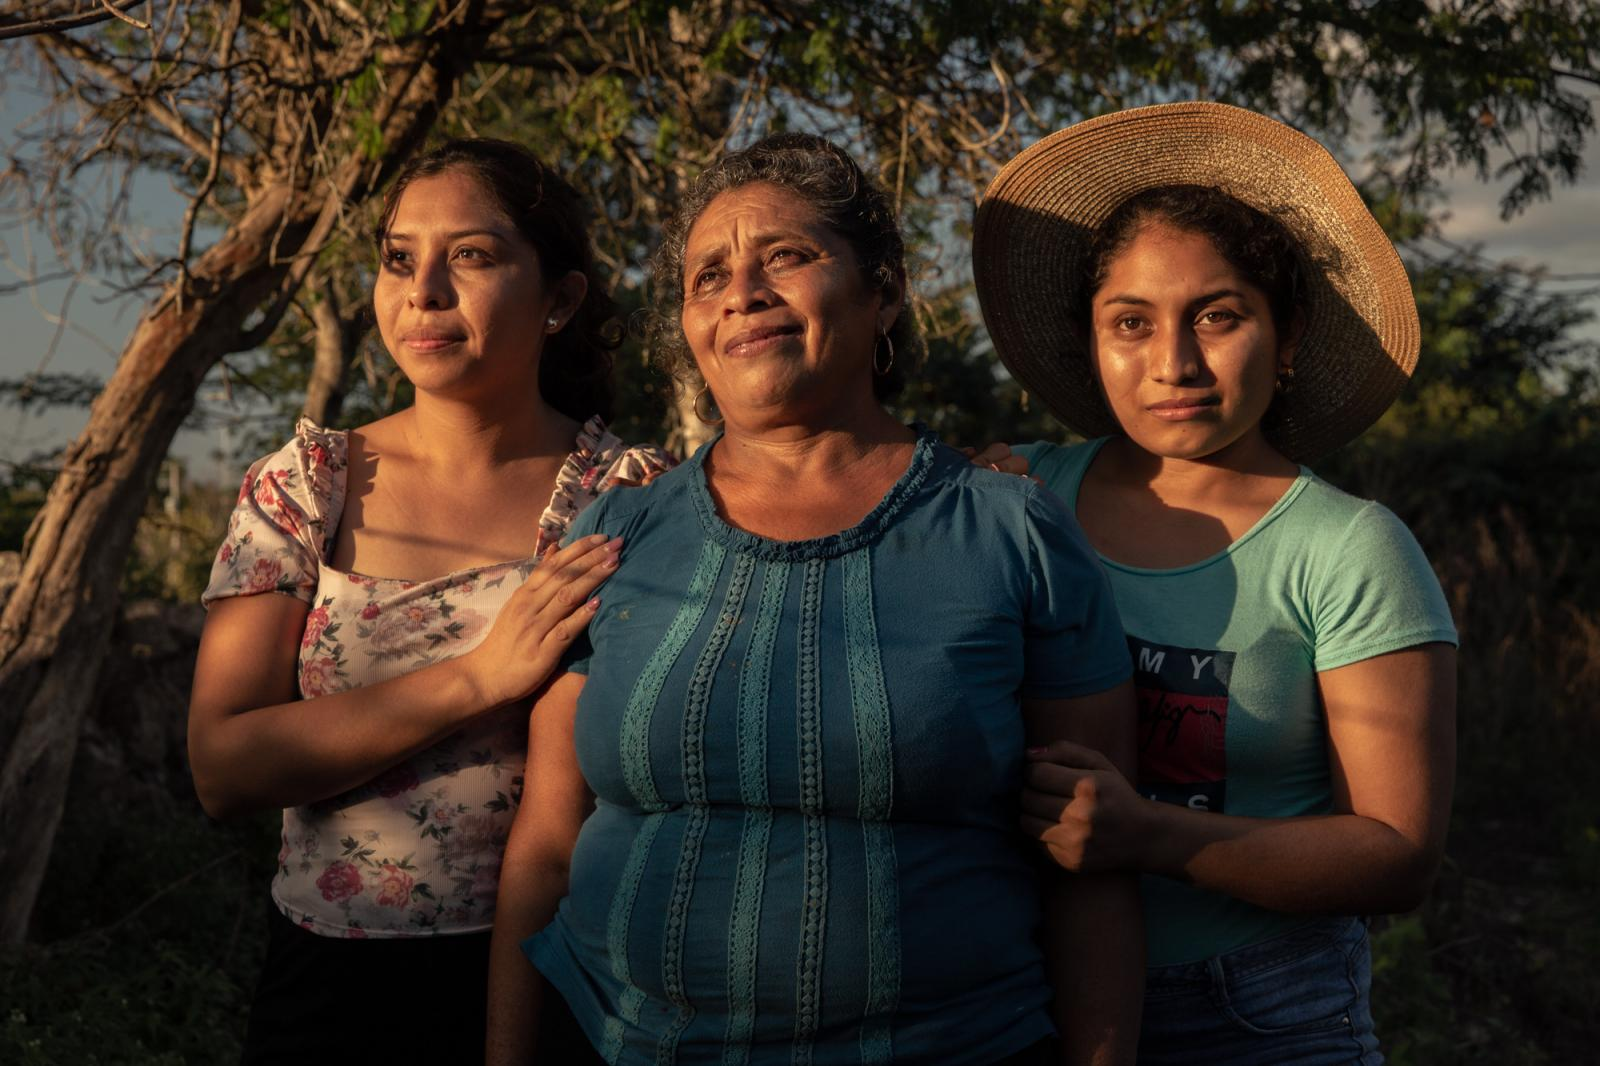 Graciela Cante (left), Graciela Chuc (center) and Flor Cante (right). Flor Cante is a woman of Mayan descent who lives with her family in a small town called Sotuta.